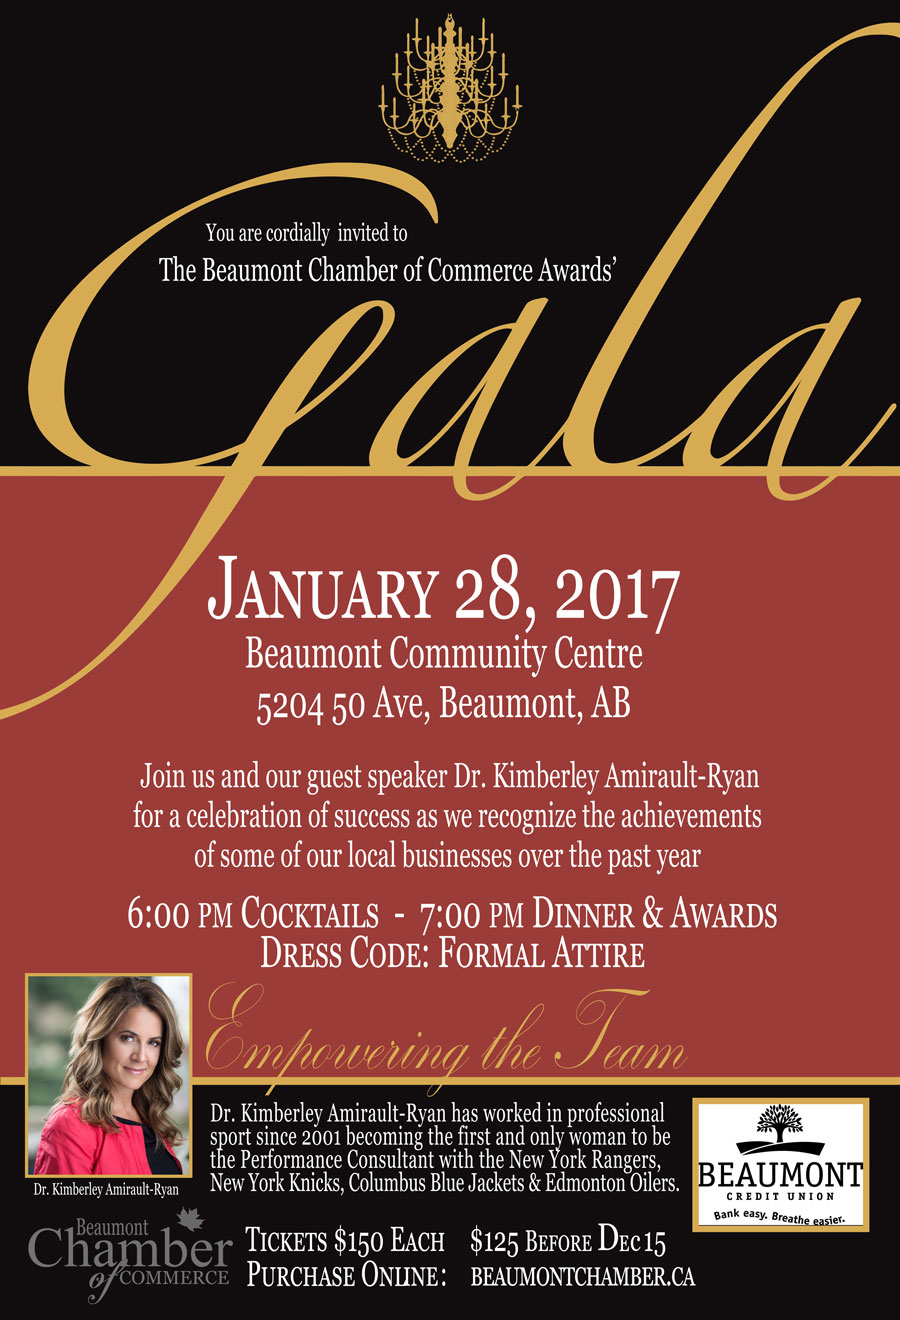 Revised-GALA-poster-with-sponsor_web.jpg